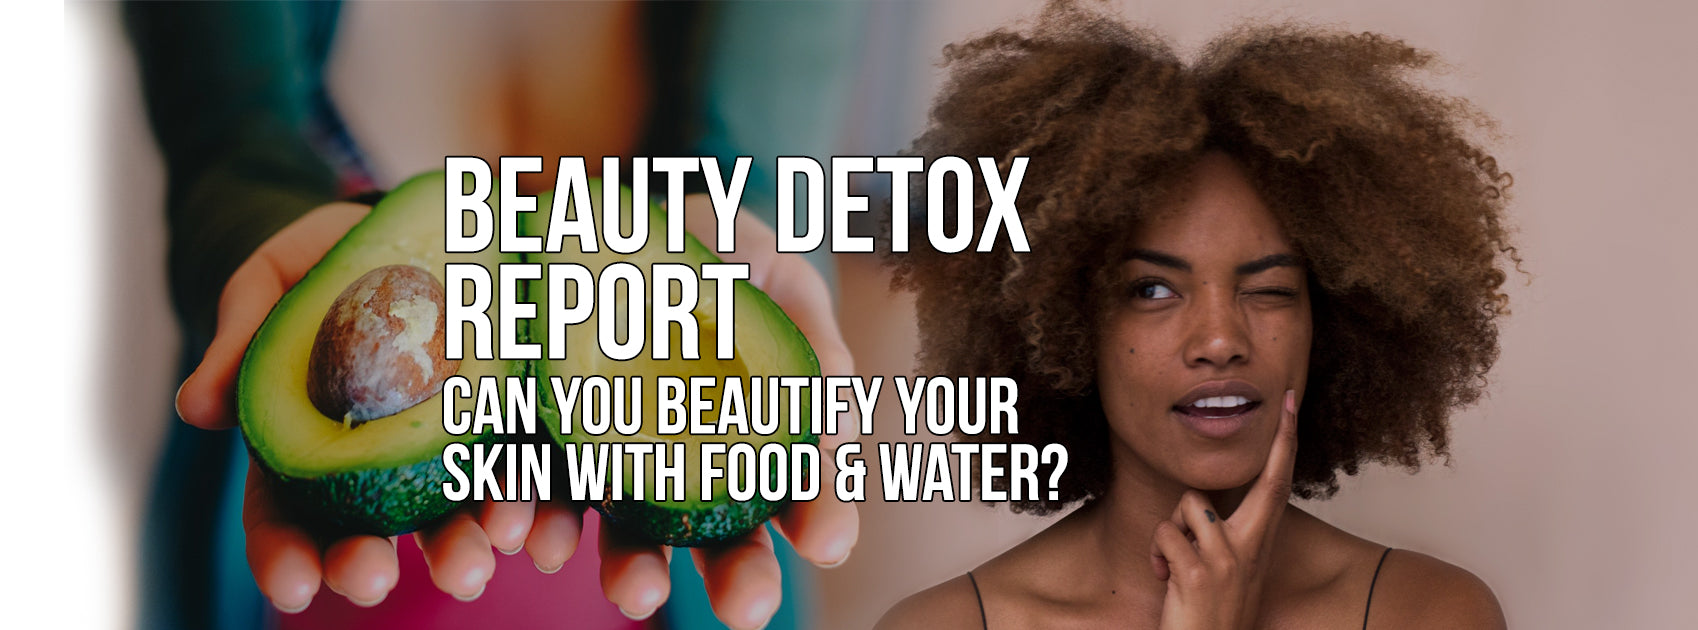 BEAUTY DETOX FOR HEALTHY AND NATURAL REPORT